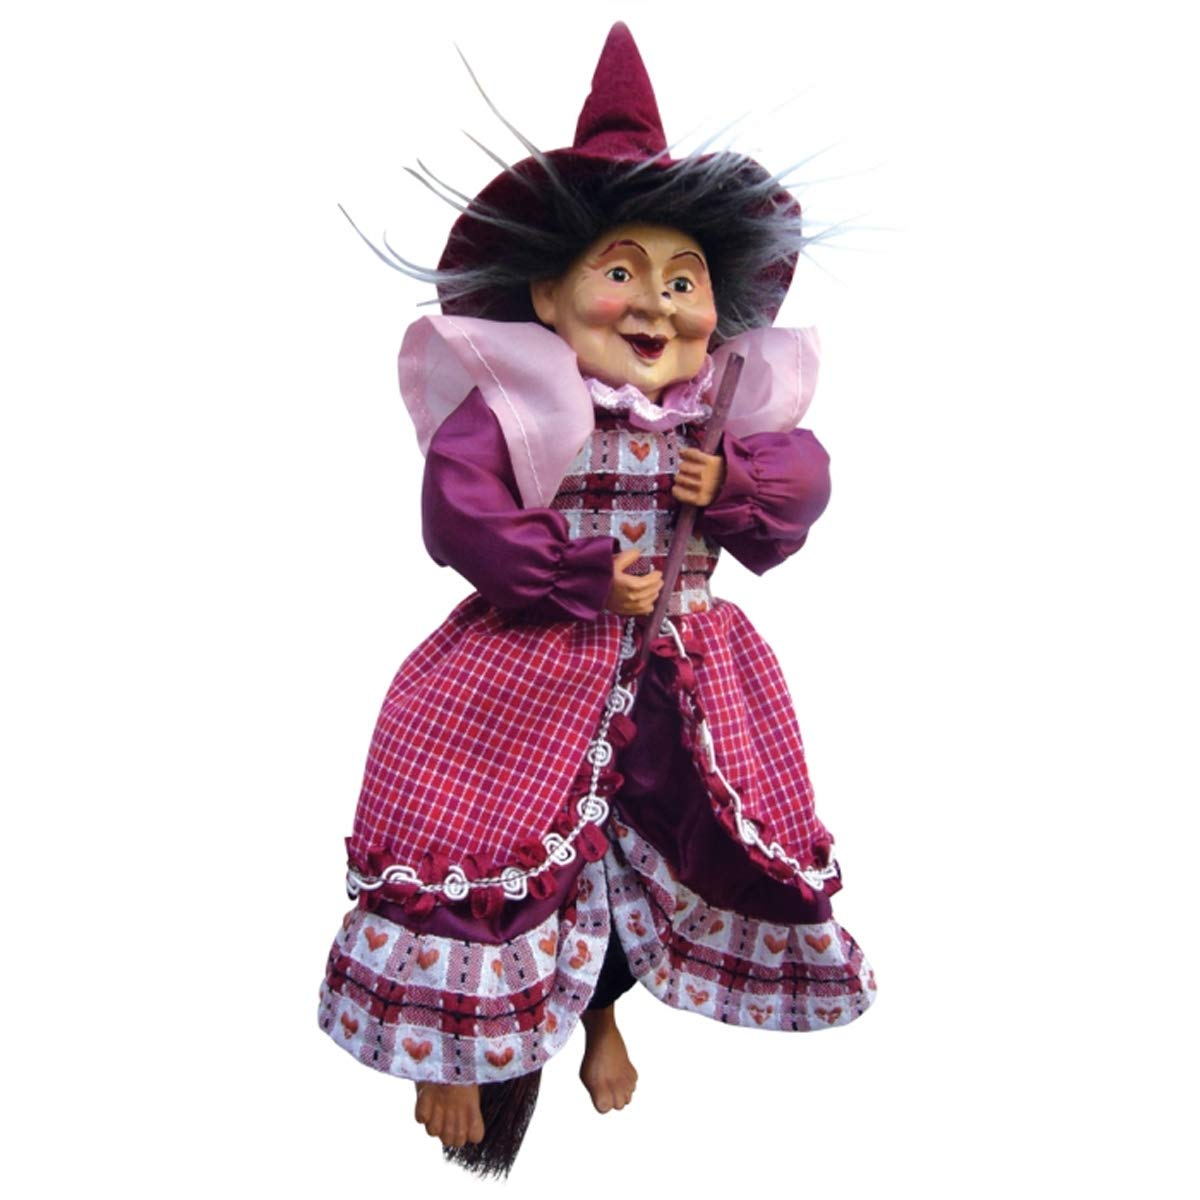 Burgundy Witches of Pendle 35cm Rosemary Kitchen Witch Hanging or Sitting